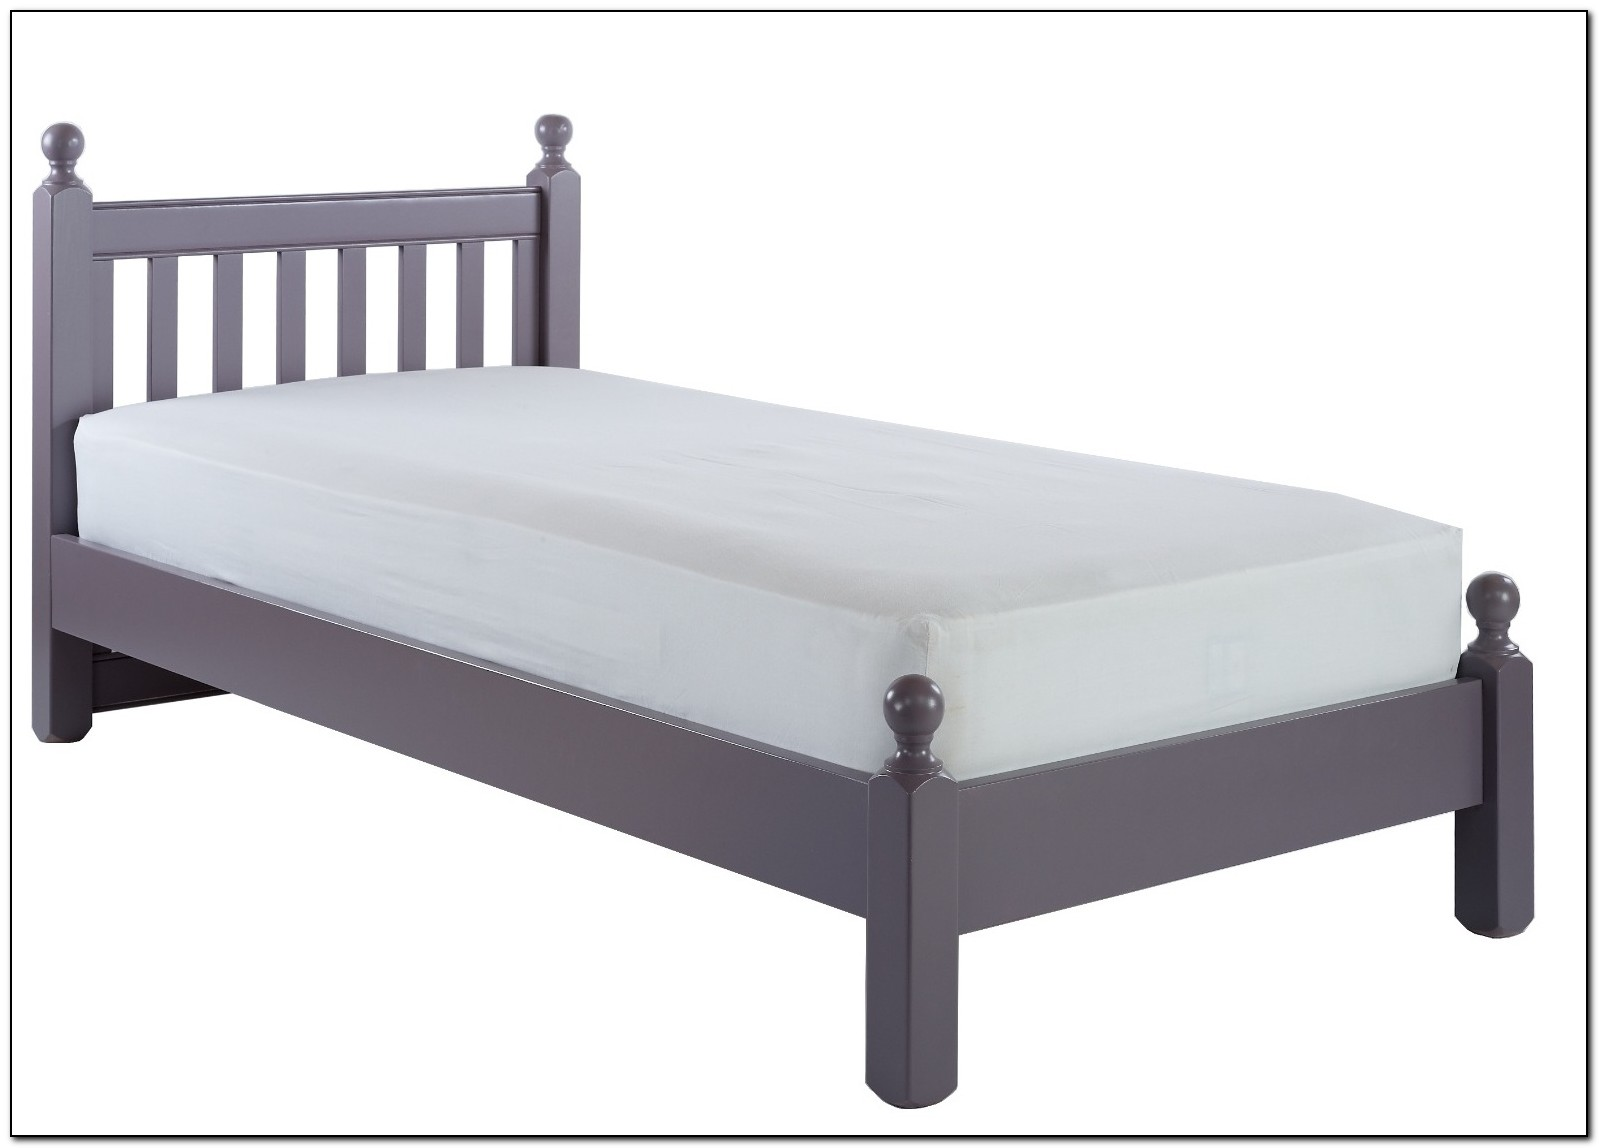 Single Bed Size In Feet